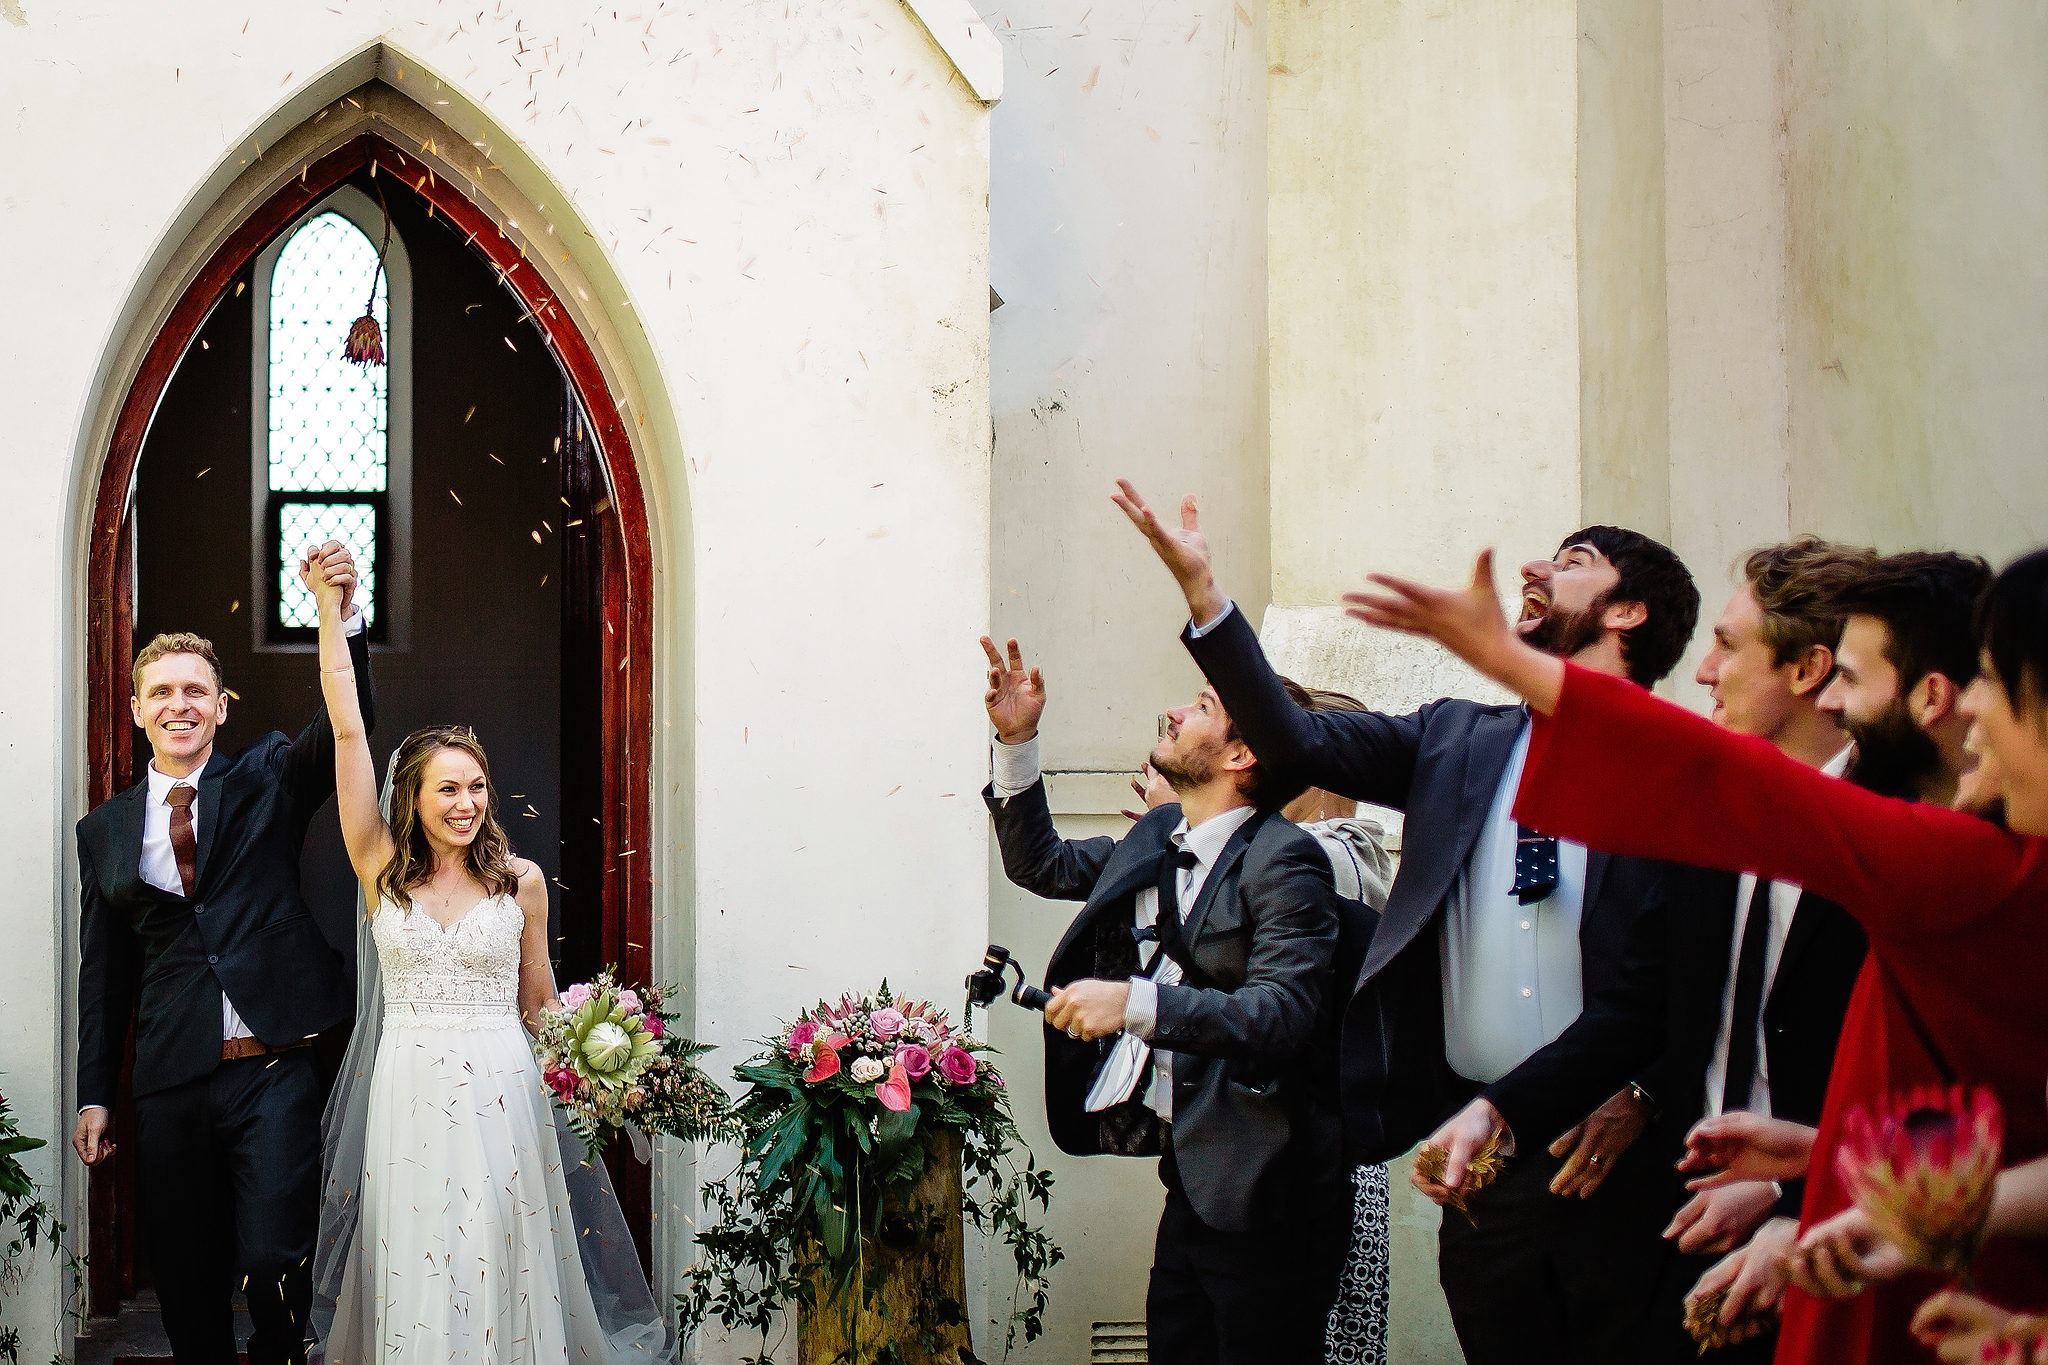 Couple showered by well-wishers leaving the church - photo by Ruan Redelinghuys Photography